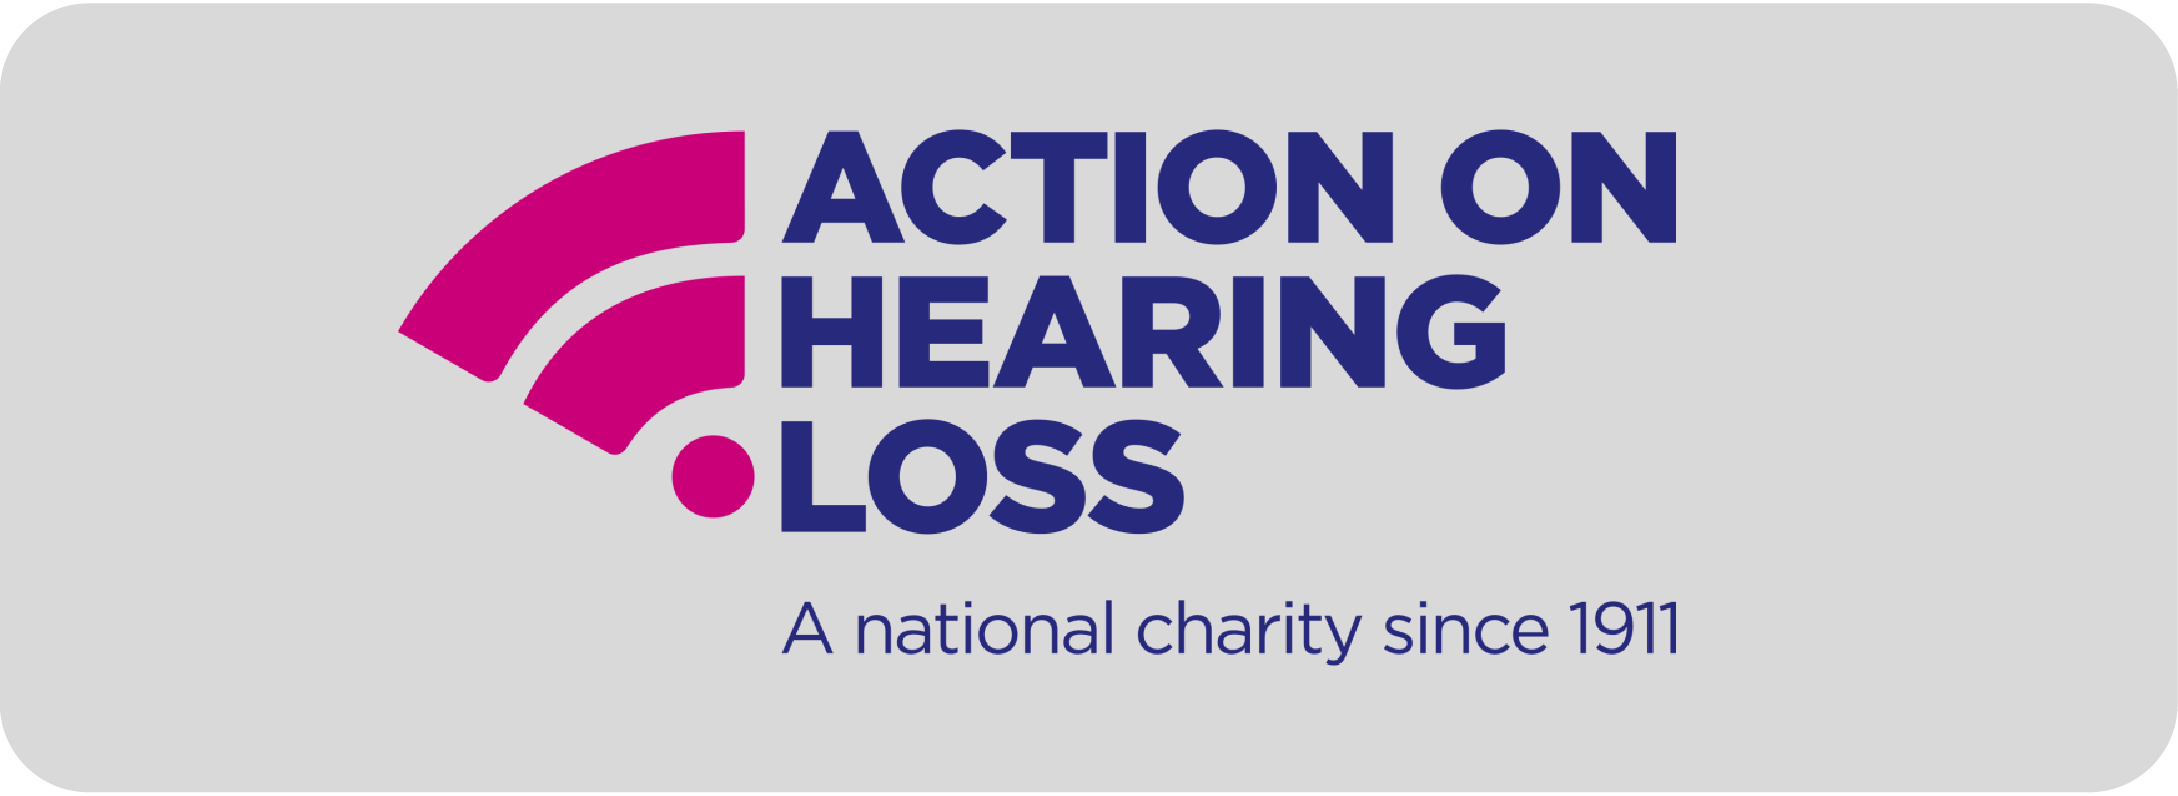 Connected Group Ltd Website Assets_Action On Hearing Loss.png